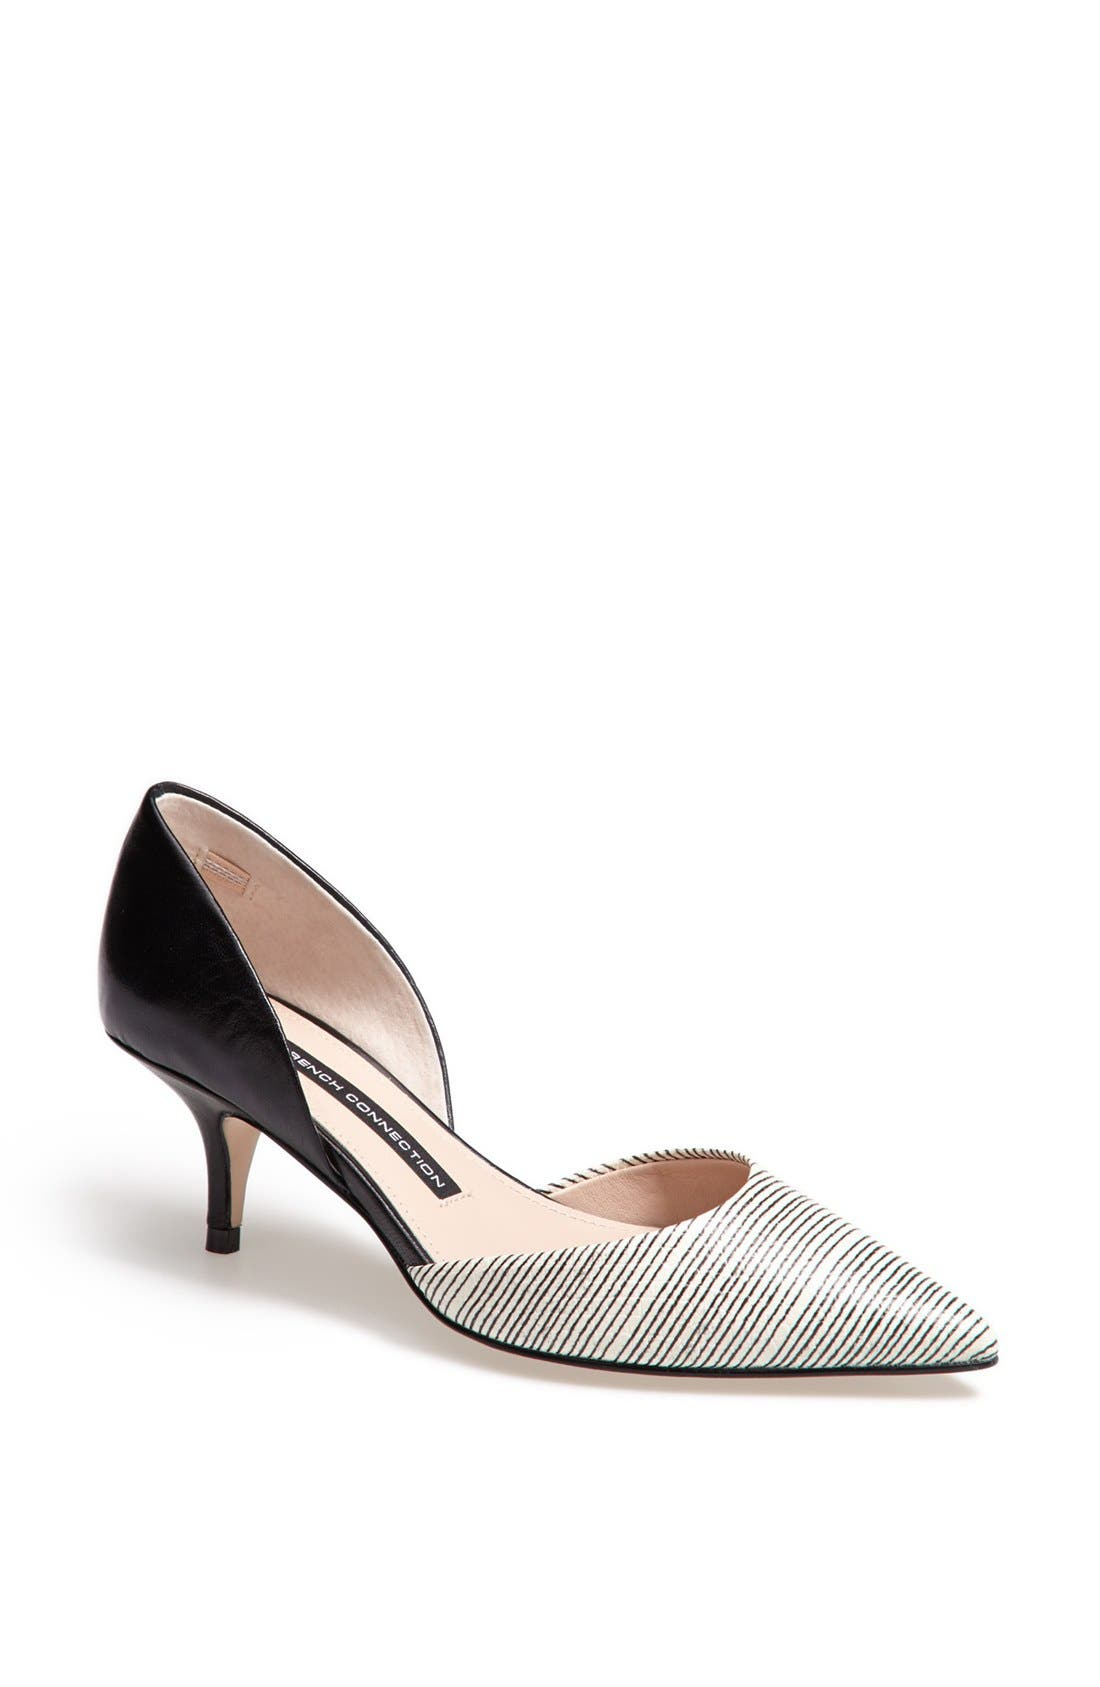 Alternate Image 1 Selected - French Connection 'Effie' Pointy Toe d'Orsay Pump